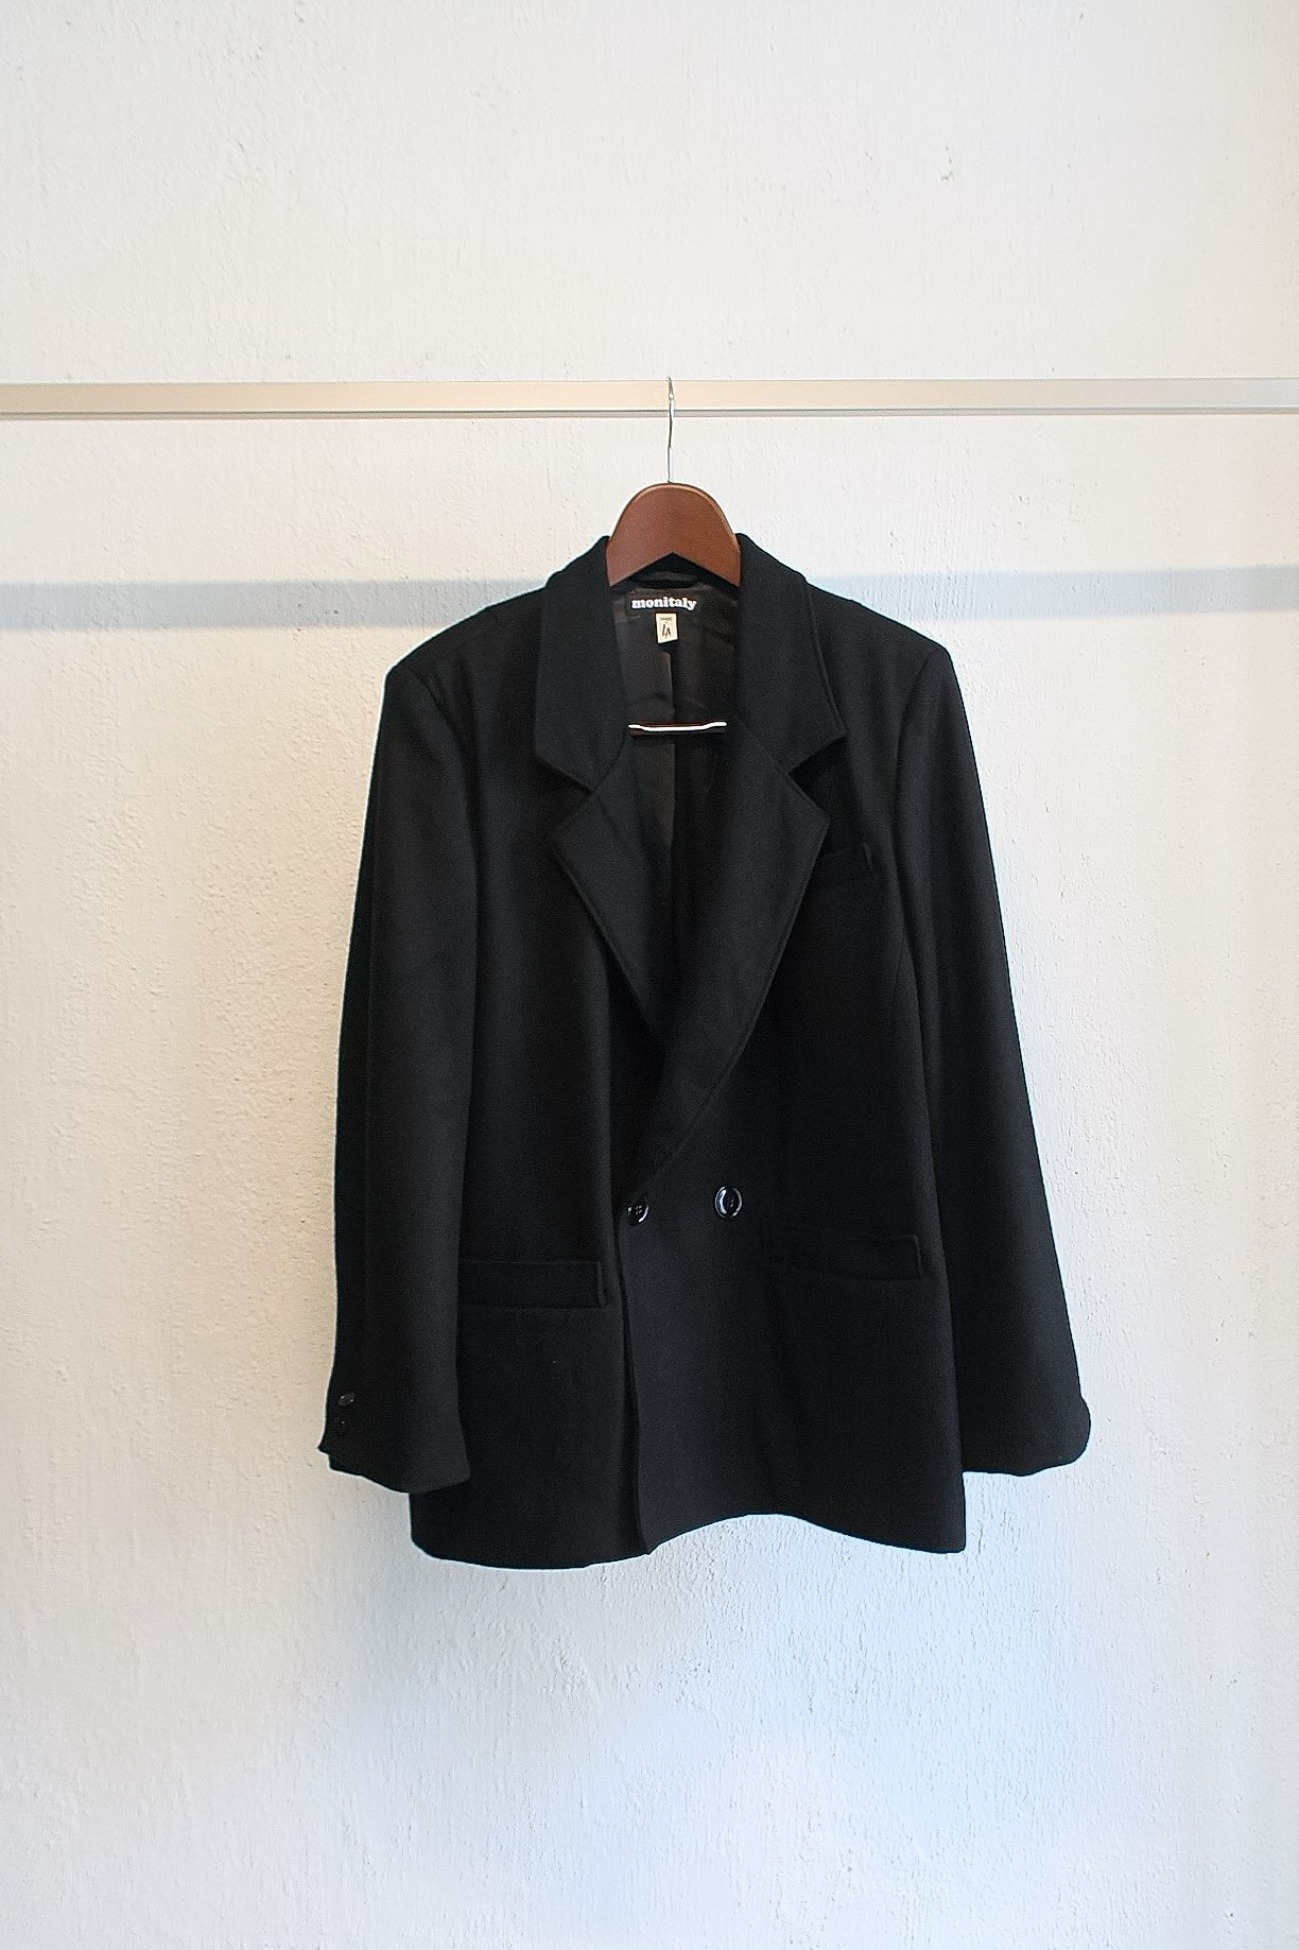 [Monitaly] Mickey Jacket - Wool Flannel Solid Black